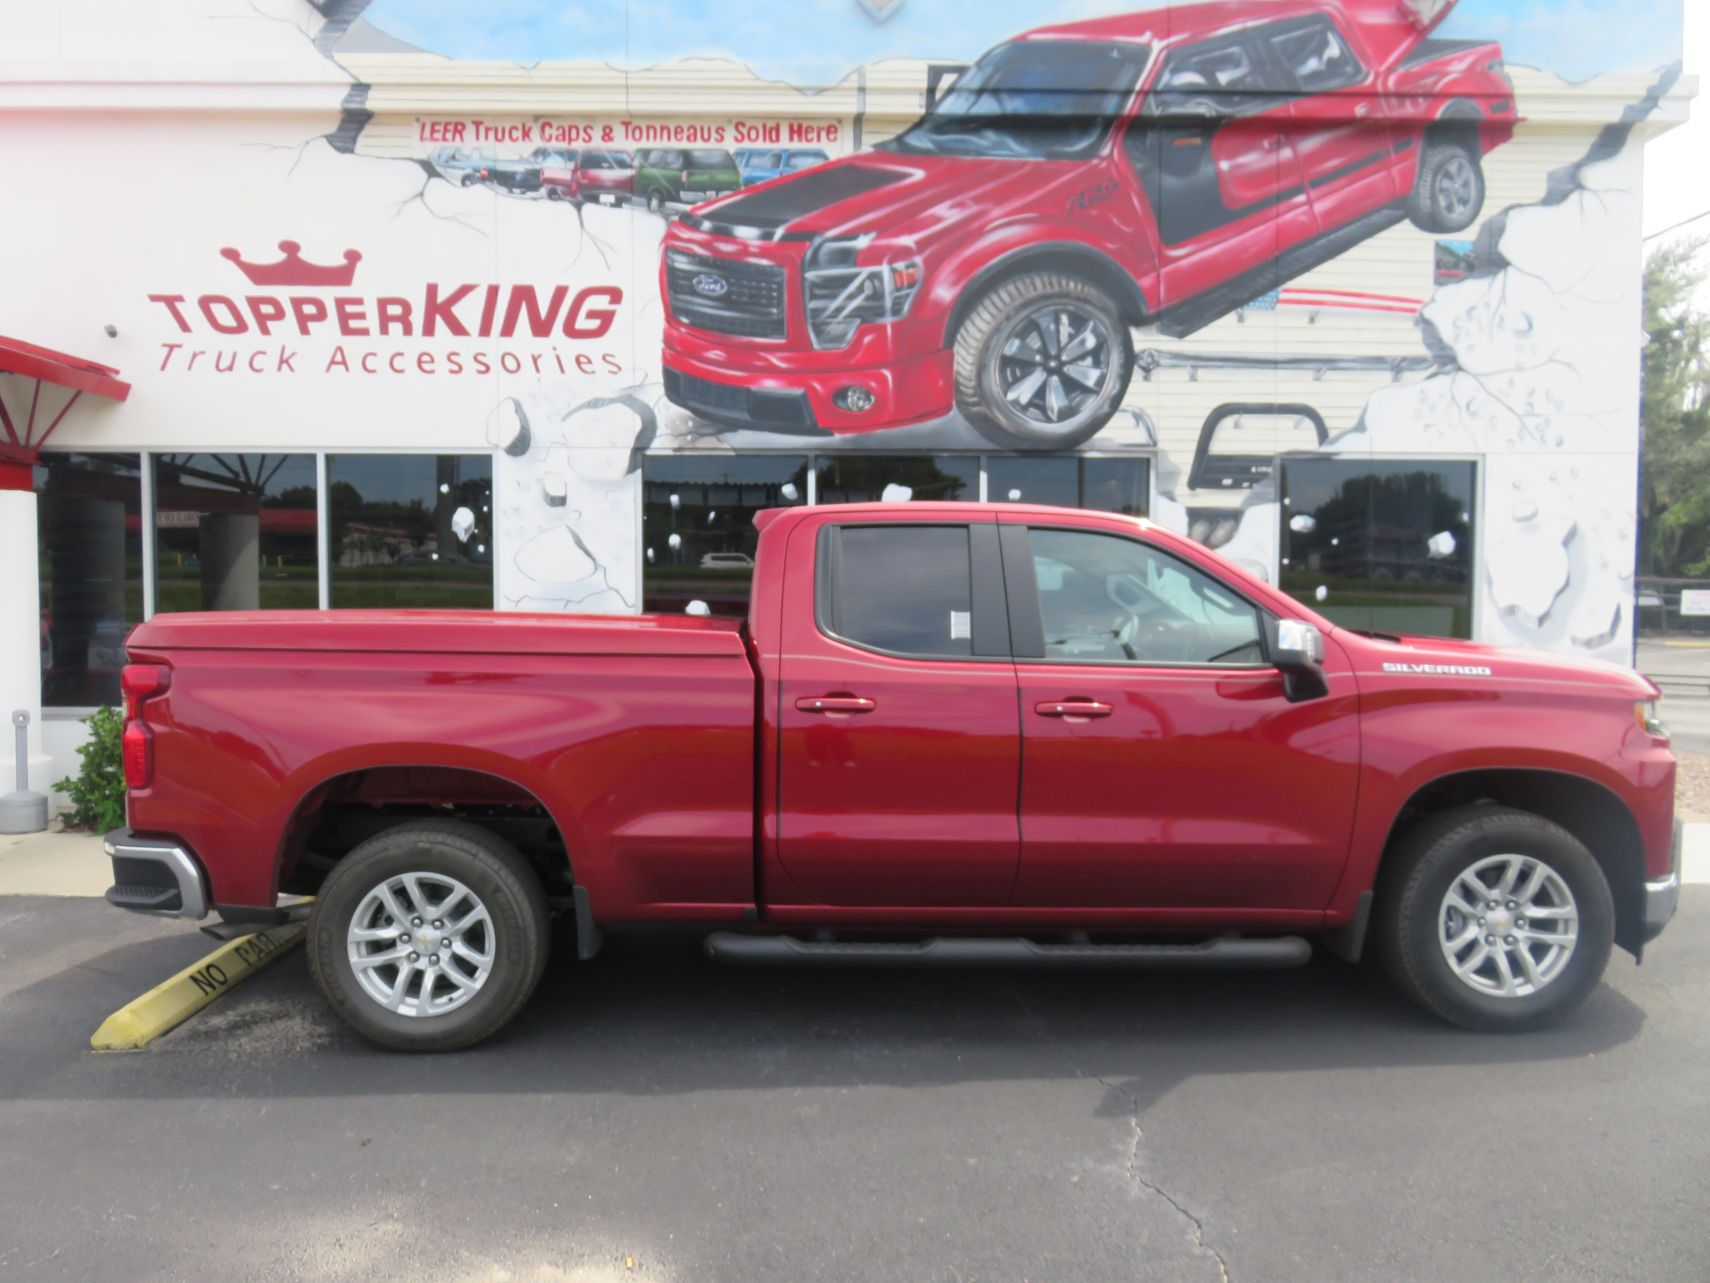 2019 Chevy Silverado with LEER 700, Blackout Nerf Bars, and Hitch, by TopperKING in Brandon, FL 813-689-2449 or Clearwater, FL 727-530-9066. Call today!